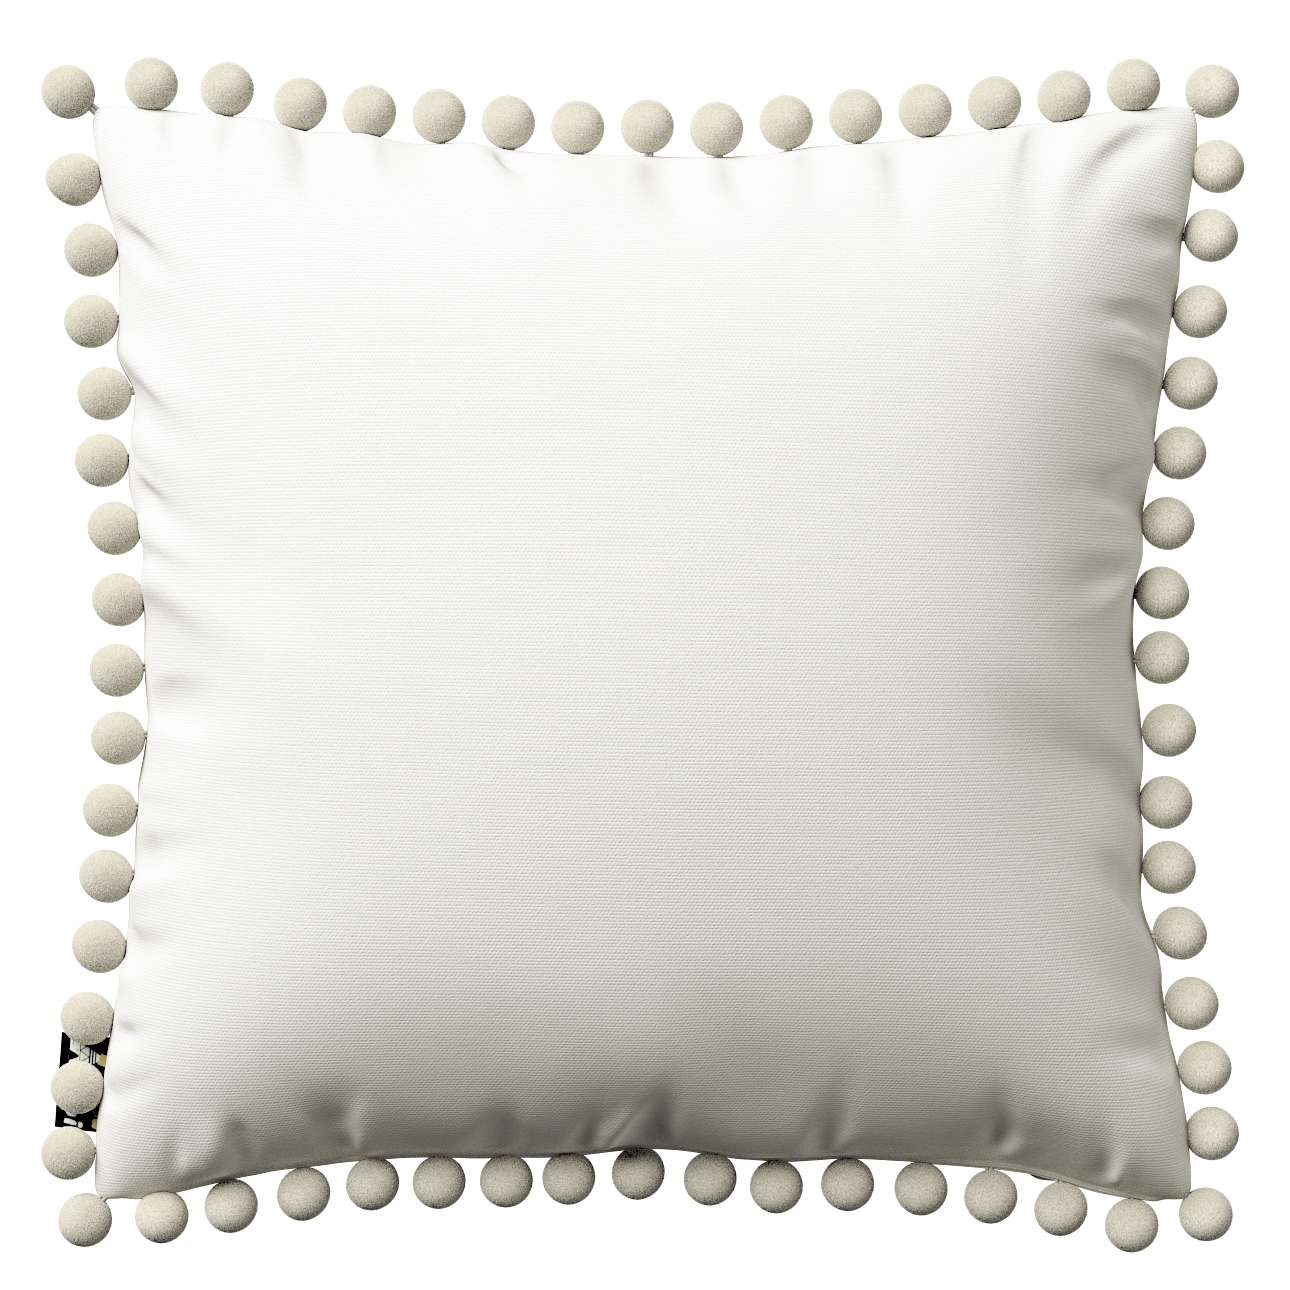 Daisy cushion covers with pom poms in collection Cotton Story, fabric: 702-34